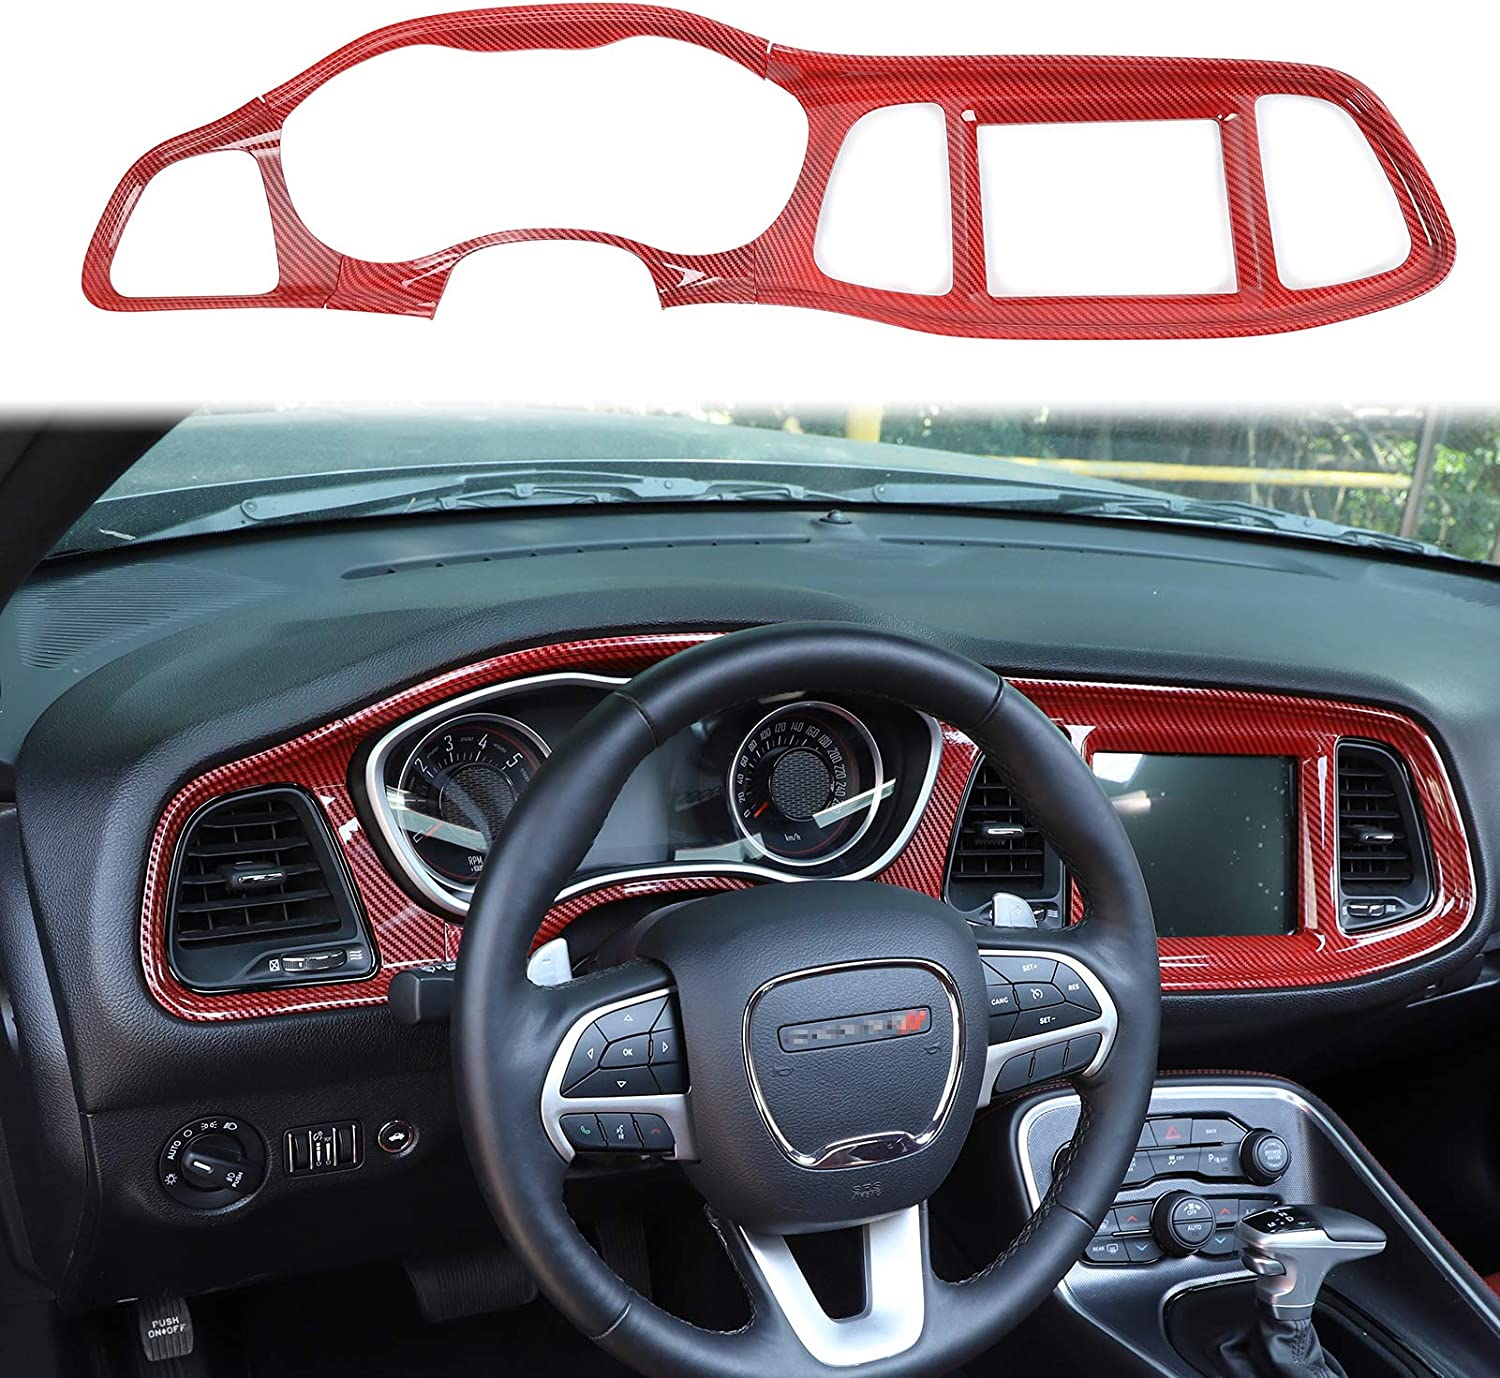 Voodonala for Challenger Gear Shift Panel Trim for 2015-2020 Dodge Challenger ABS Red